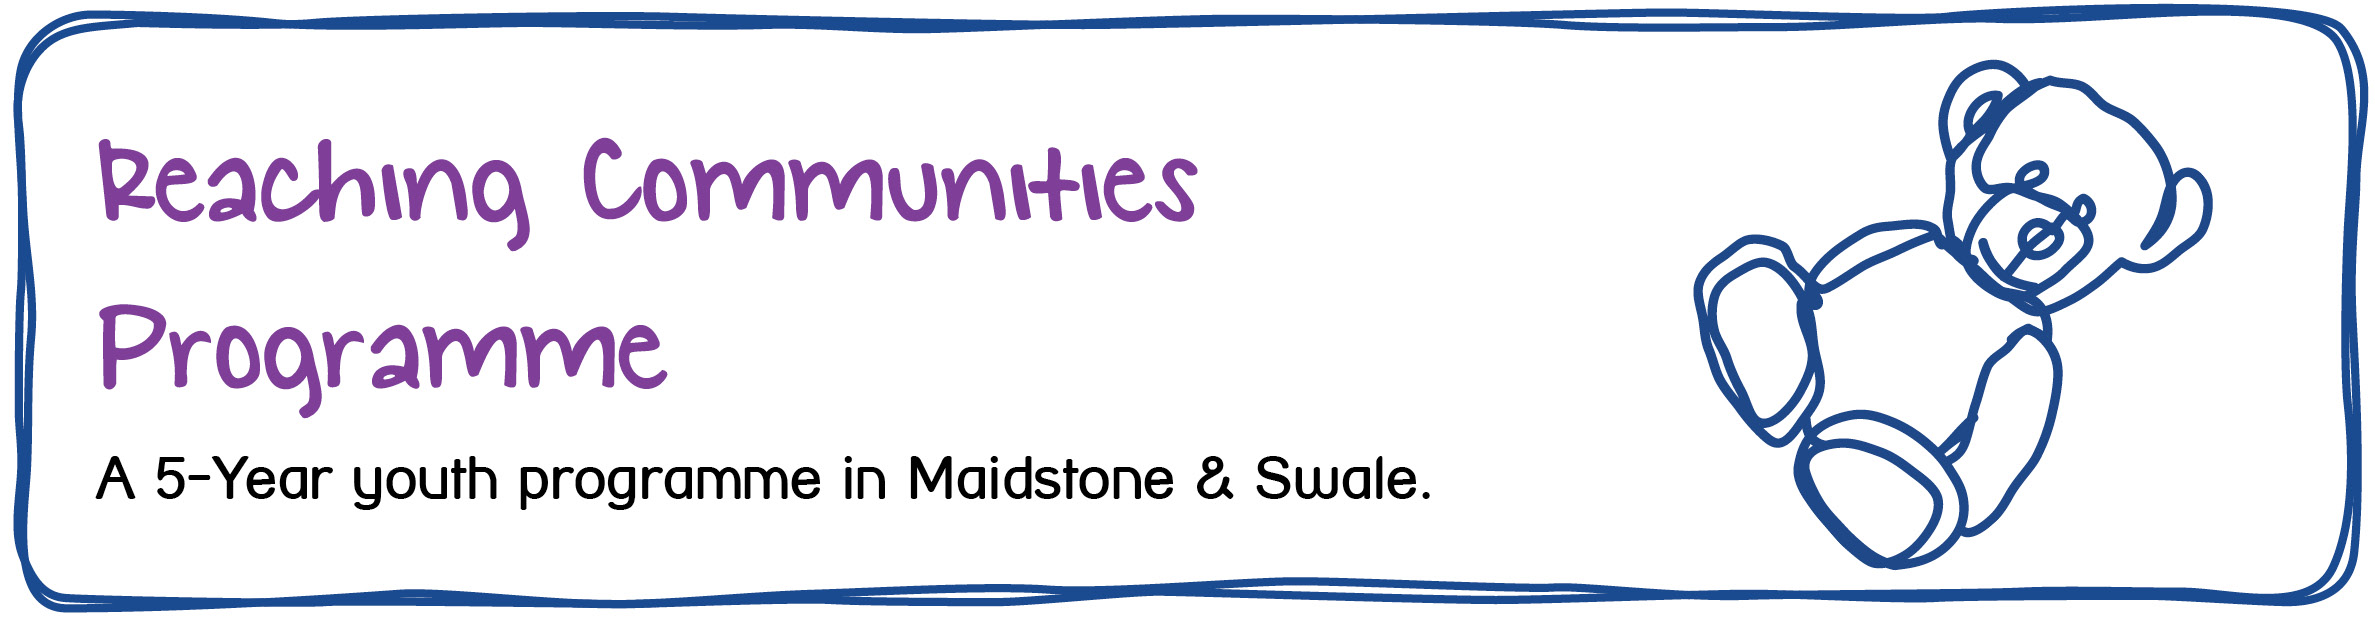 Reaching Communities Programme - A 5-Year youth programme in Maidstone and Swale.